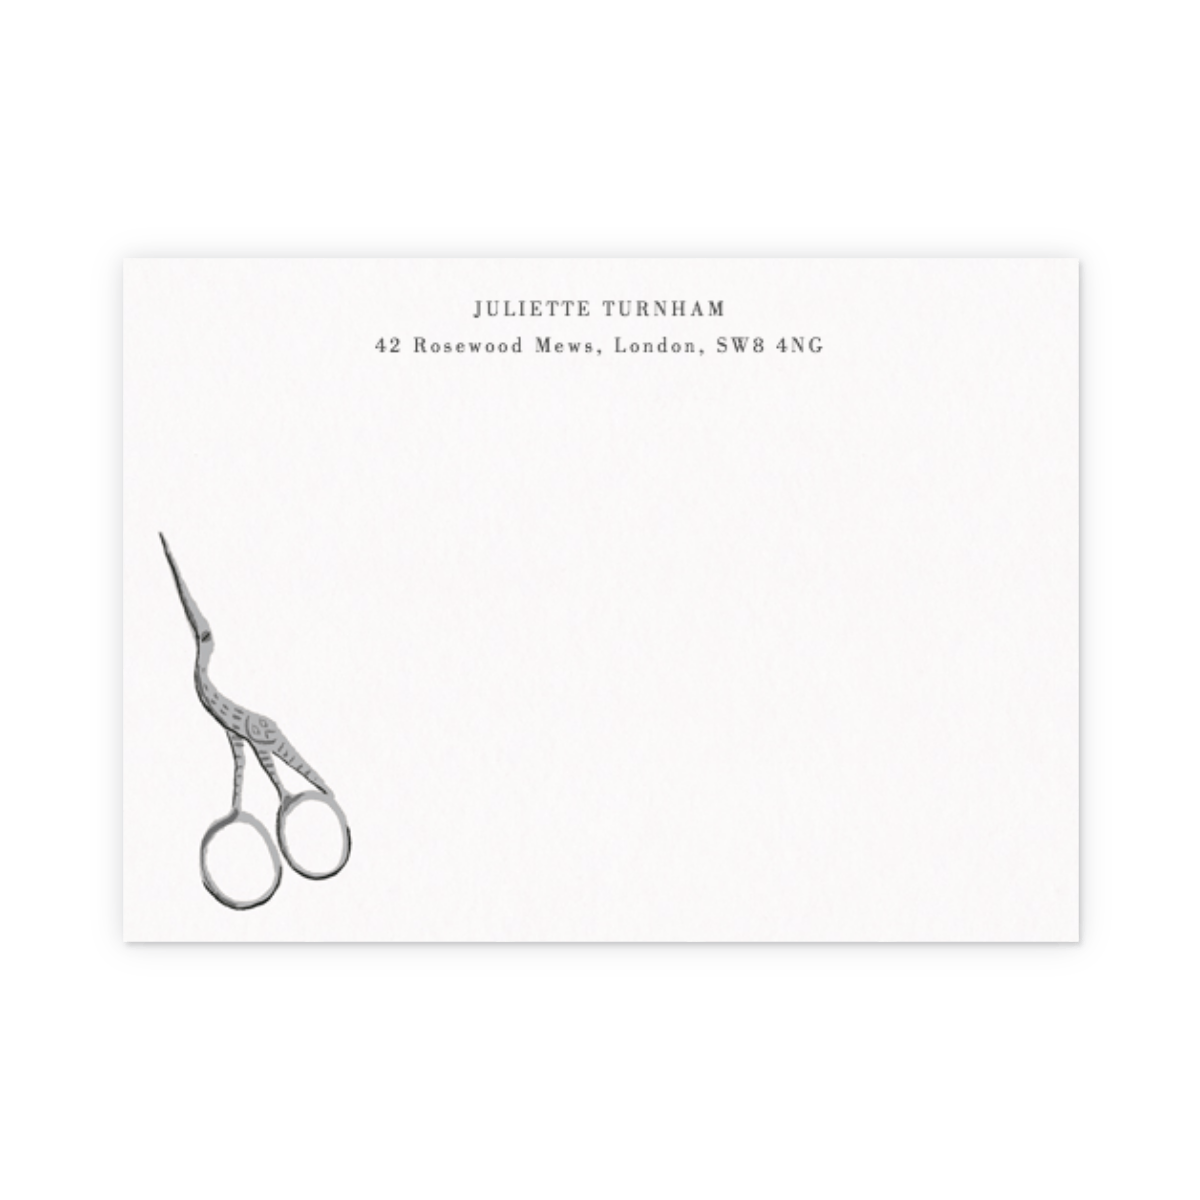 Https%3a%2f%2fwww.papier.com%2fproduct image%2f27889%2f10%2fembroidery scissors 6958 front 1508156668.png?ixlib=rb 1.1